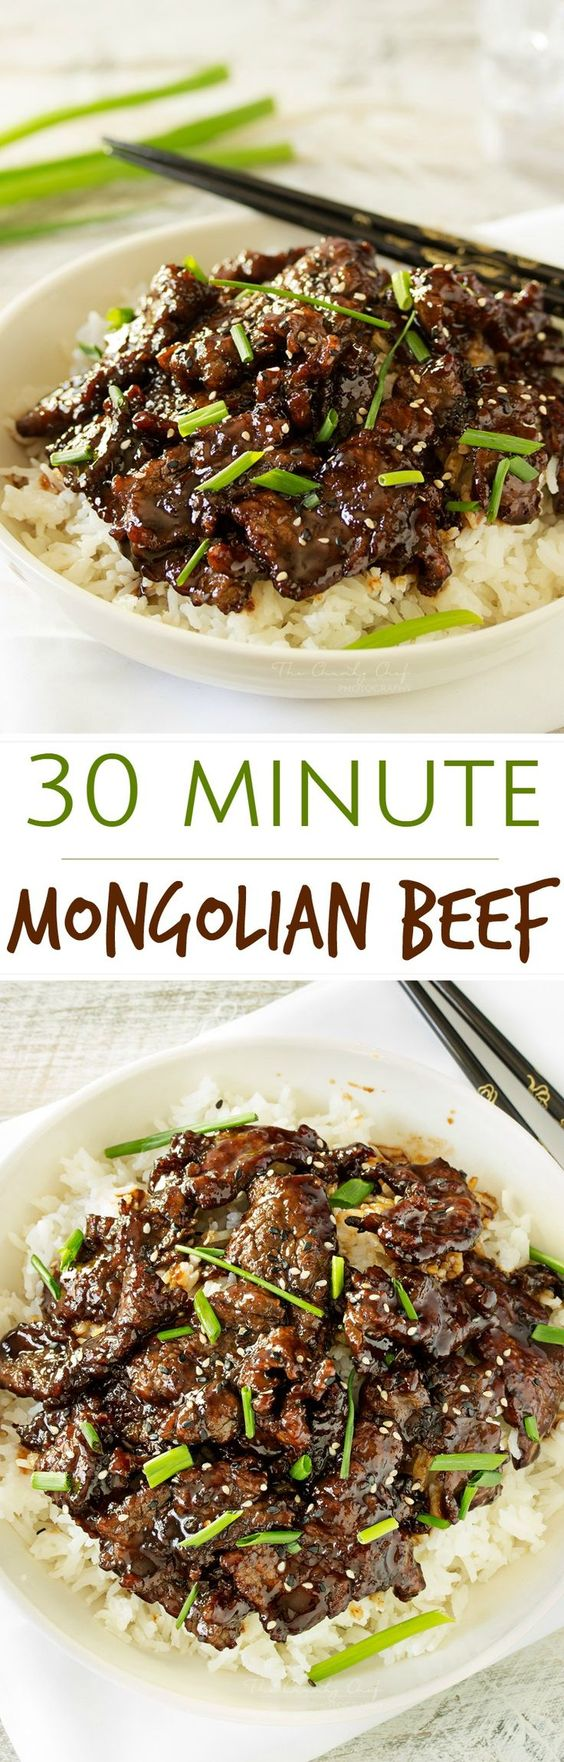 30 Minute Mongolian Beef Recipe via The Chunky Chef | Mongolian beef is such a classic and delicious Asian dish... and easy to make at home! In just 30 minutes you'll have an incredible meal! - The BEST 30 Minute Meals Recipes - Easy, Quick and Delicious Family Friendly Lunch and Dinner Ideas #30minutemeals #30minutedinners #thirtyminutedinners #30minuterecipes #fastrecipes #easyrecipes #quickrecipes #mealprep